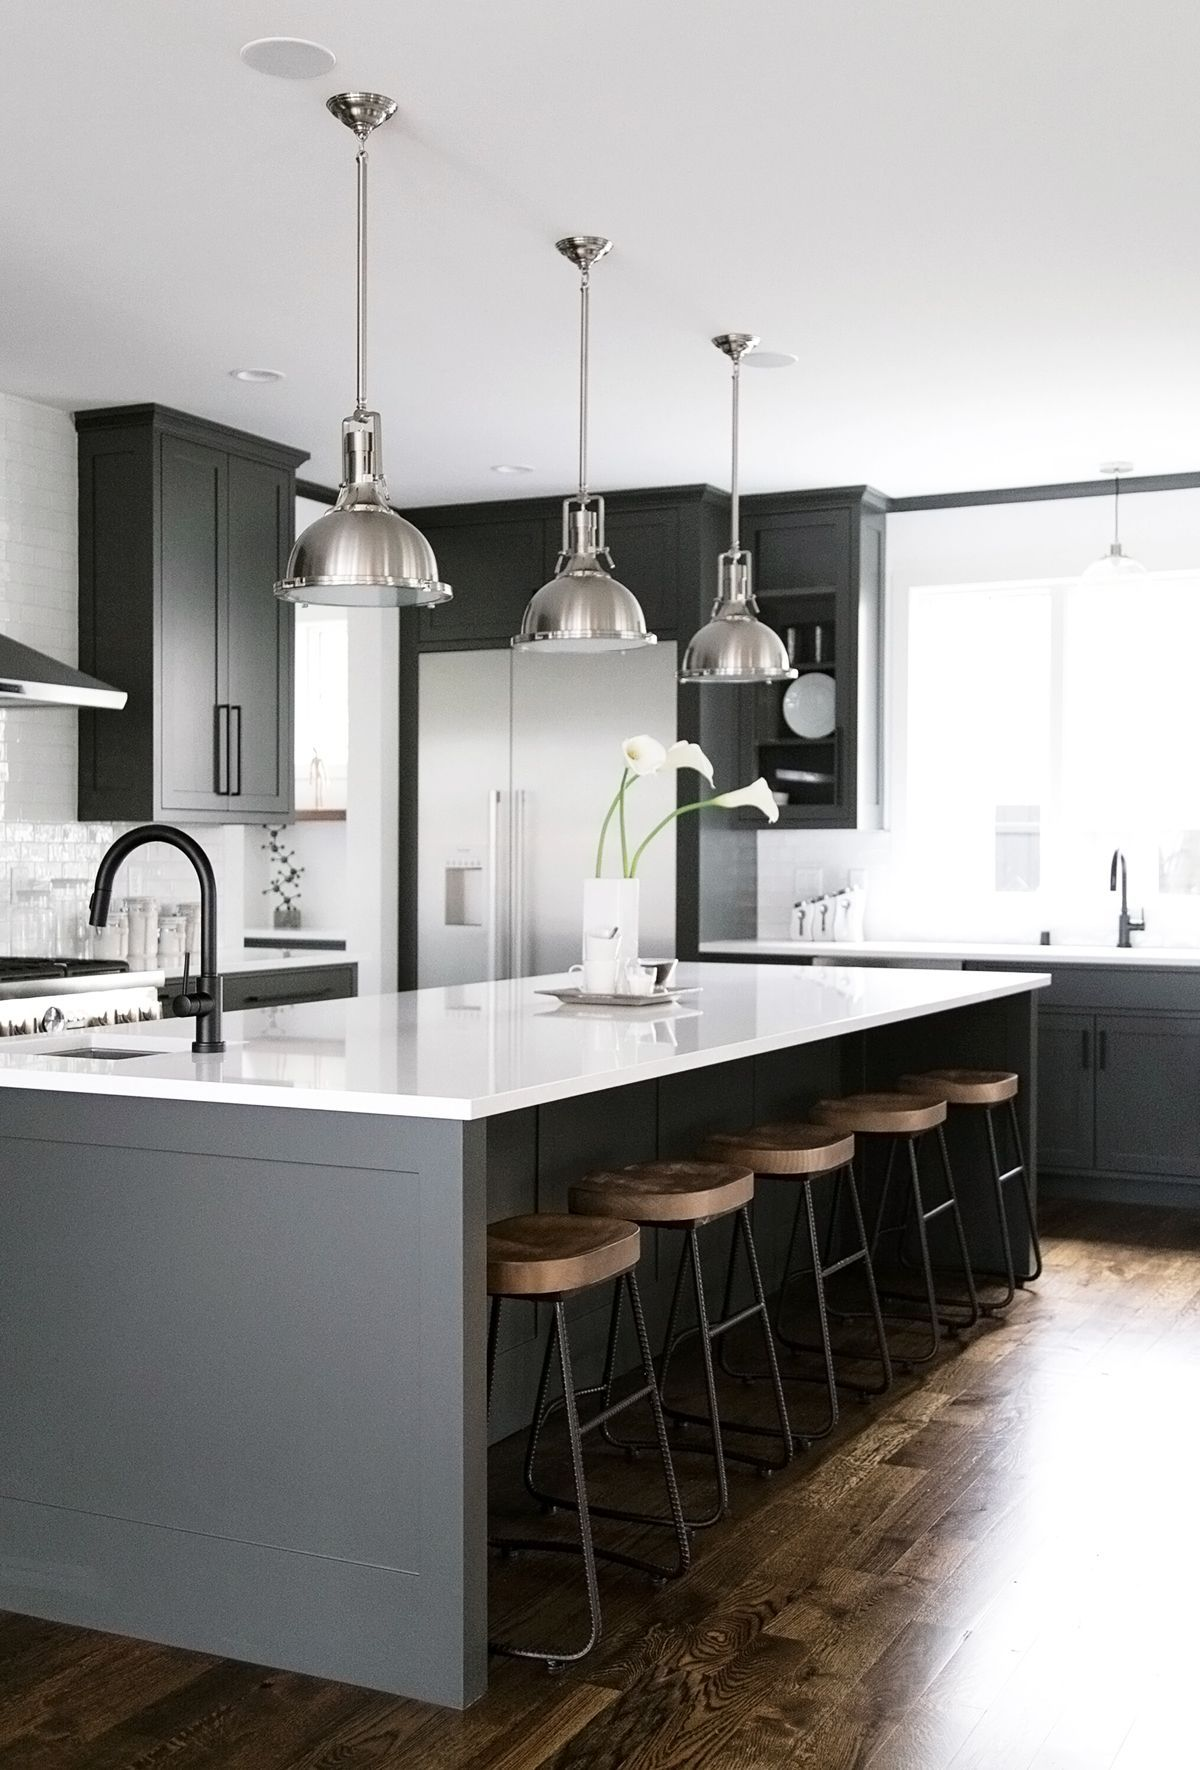 Mini Makeover :: Black is Back in the Kitchen! (coco kelley) | Pinterest